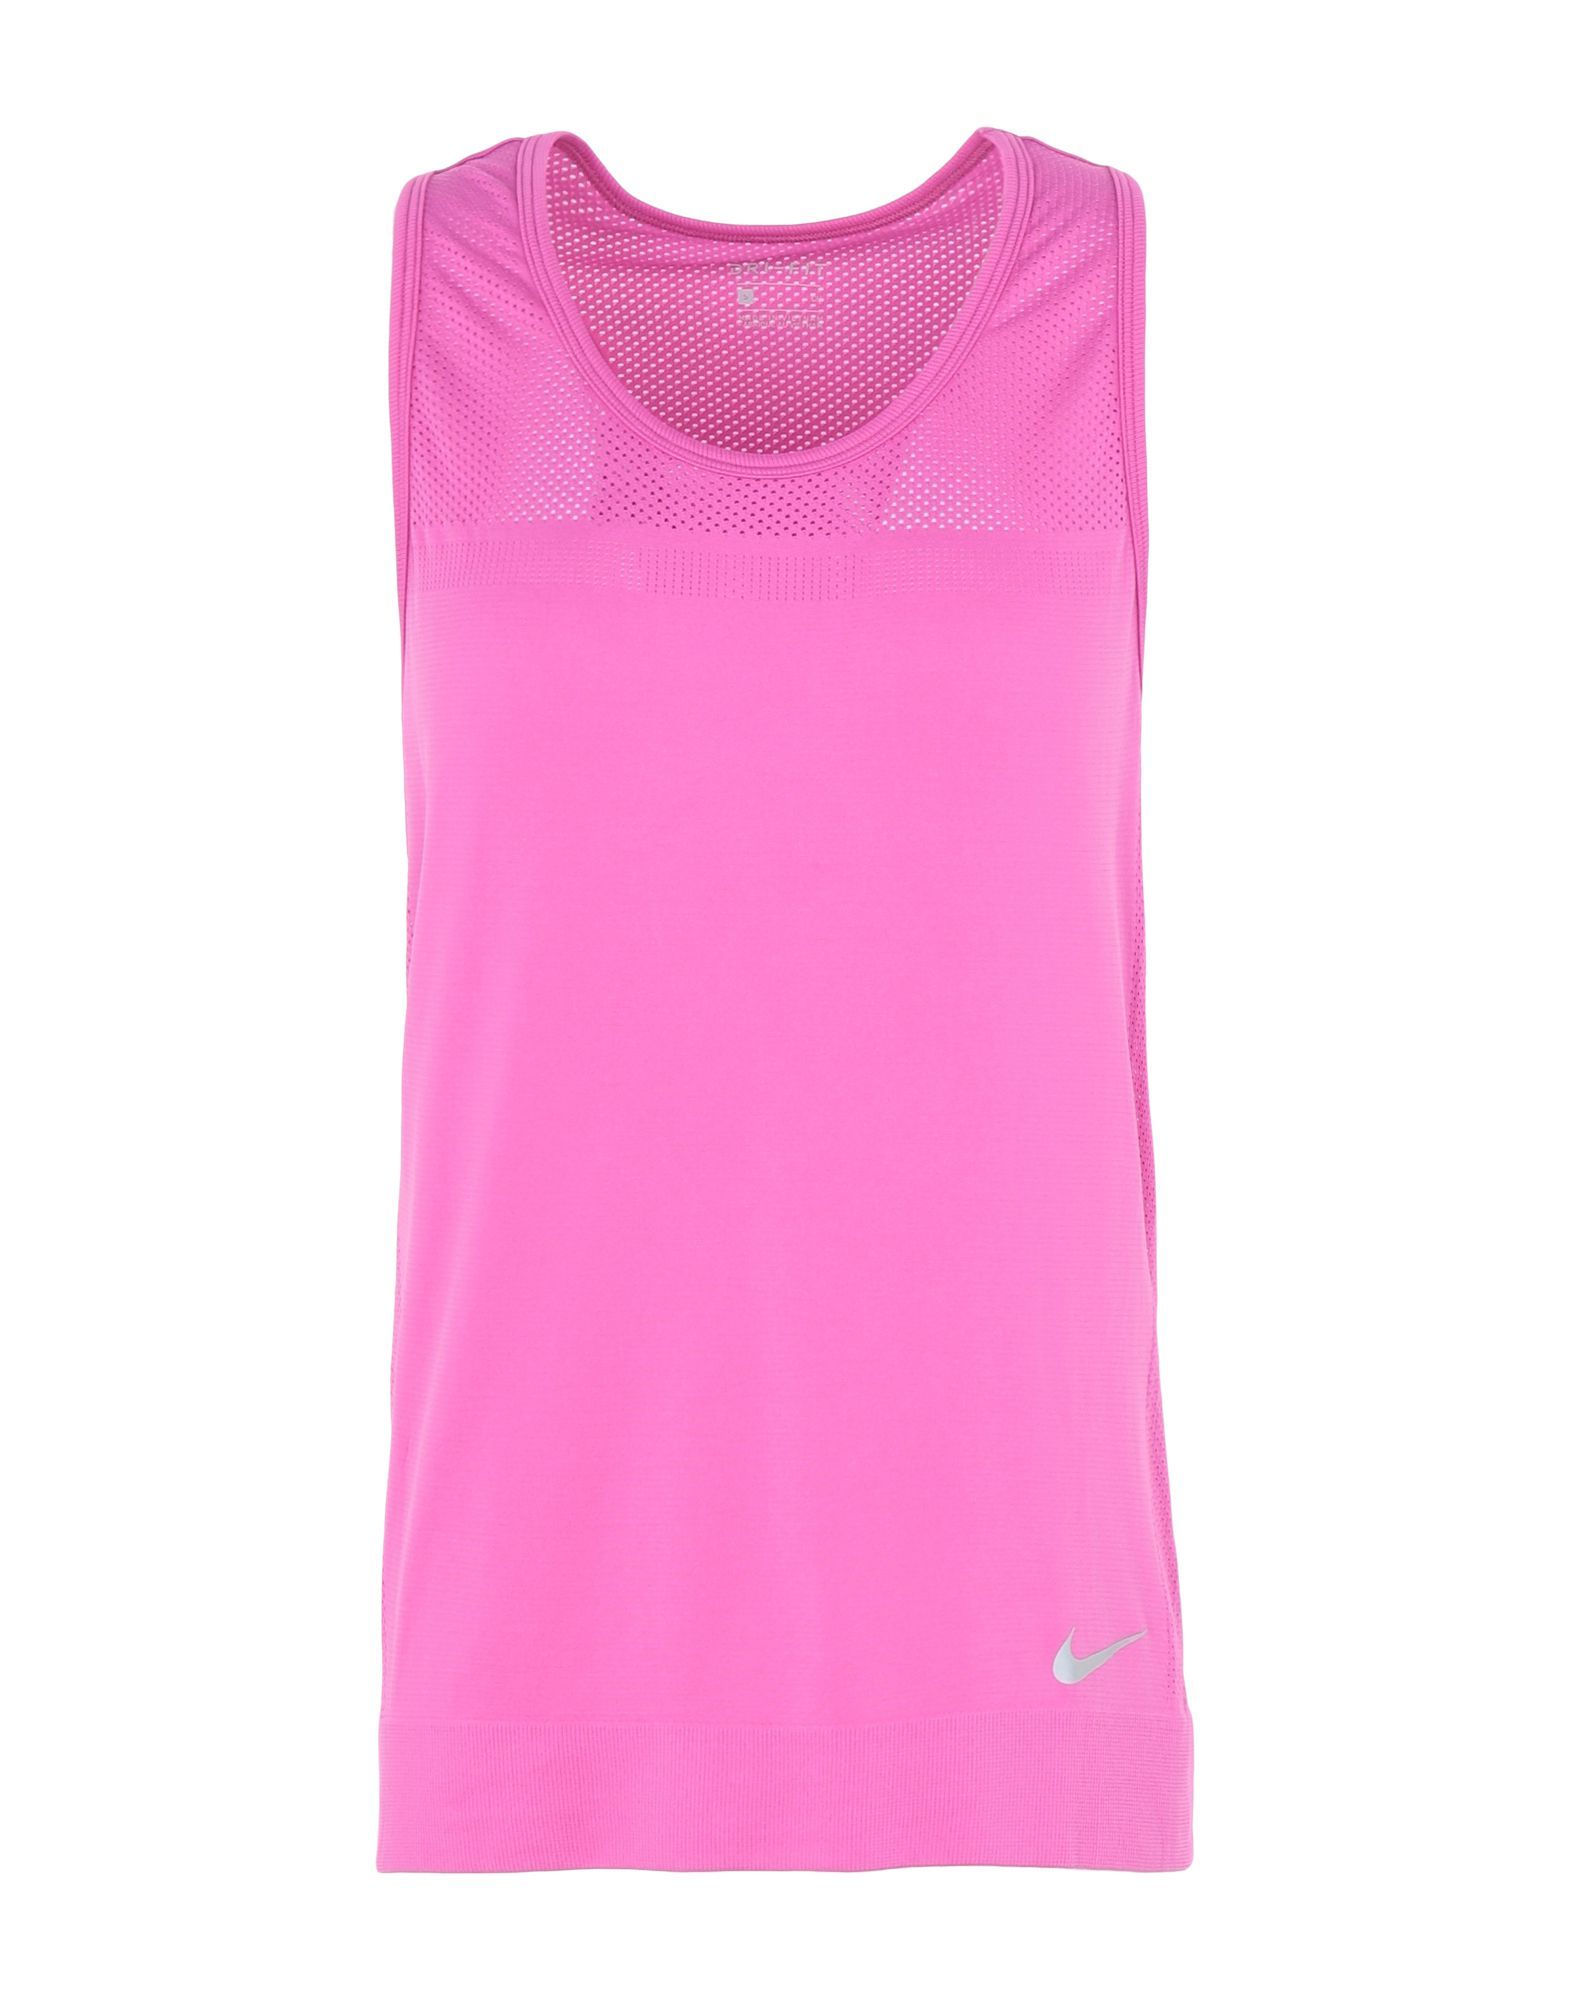 Bra E Top Performance Nike Infinite Tank - donna - 12359606LN